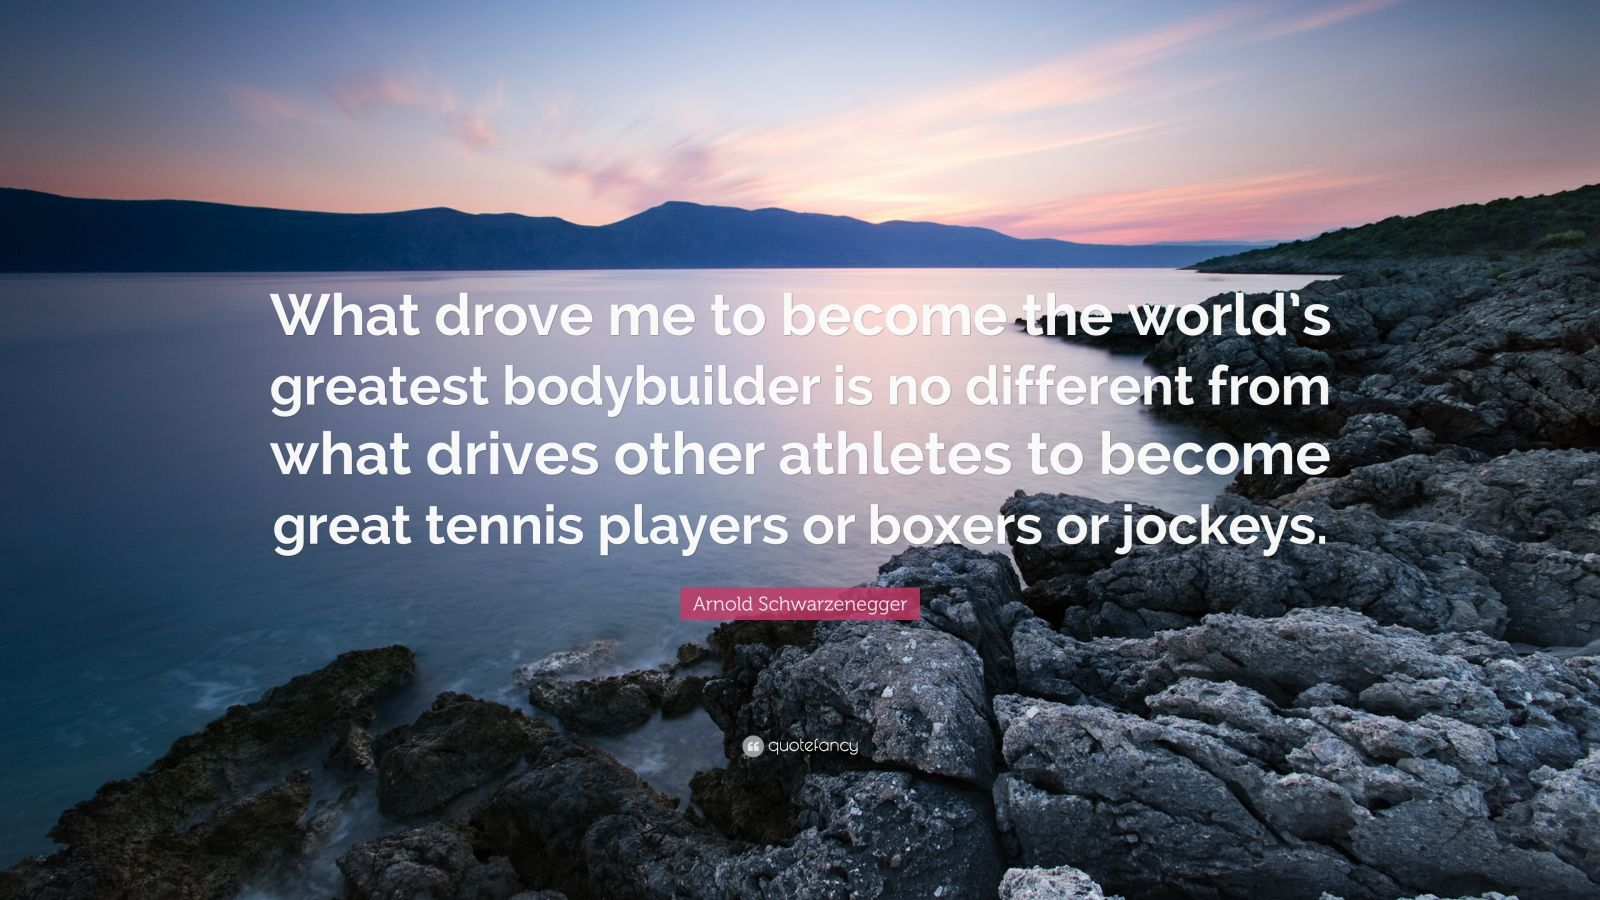 """Arnold Schwarzenegger Quote: """"What drove me to become the world's greatest bodybuilder is no different from what drives other athletes to become great tennis players or boxers or jockeys."""""""